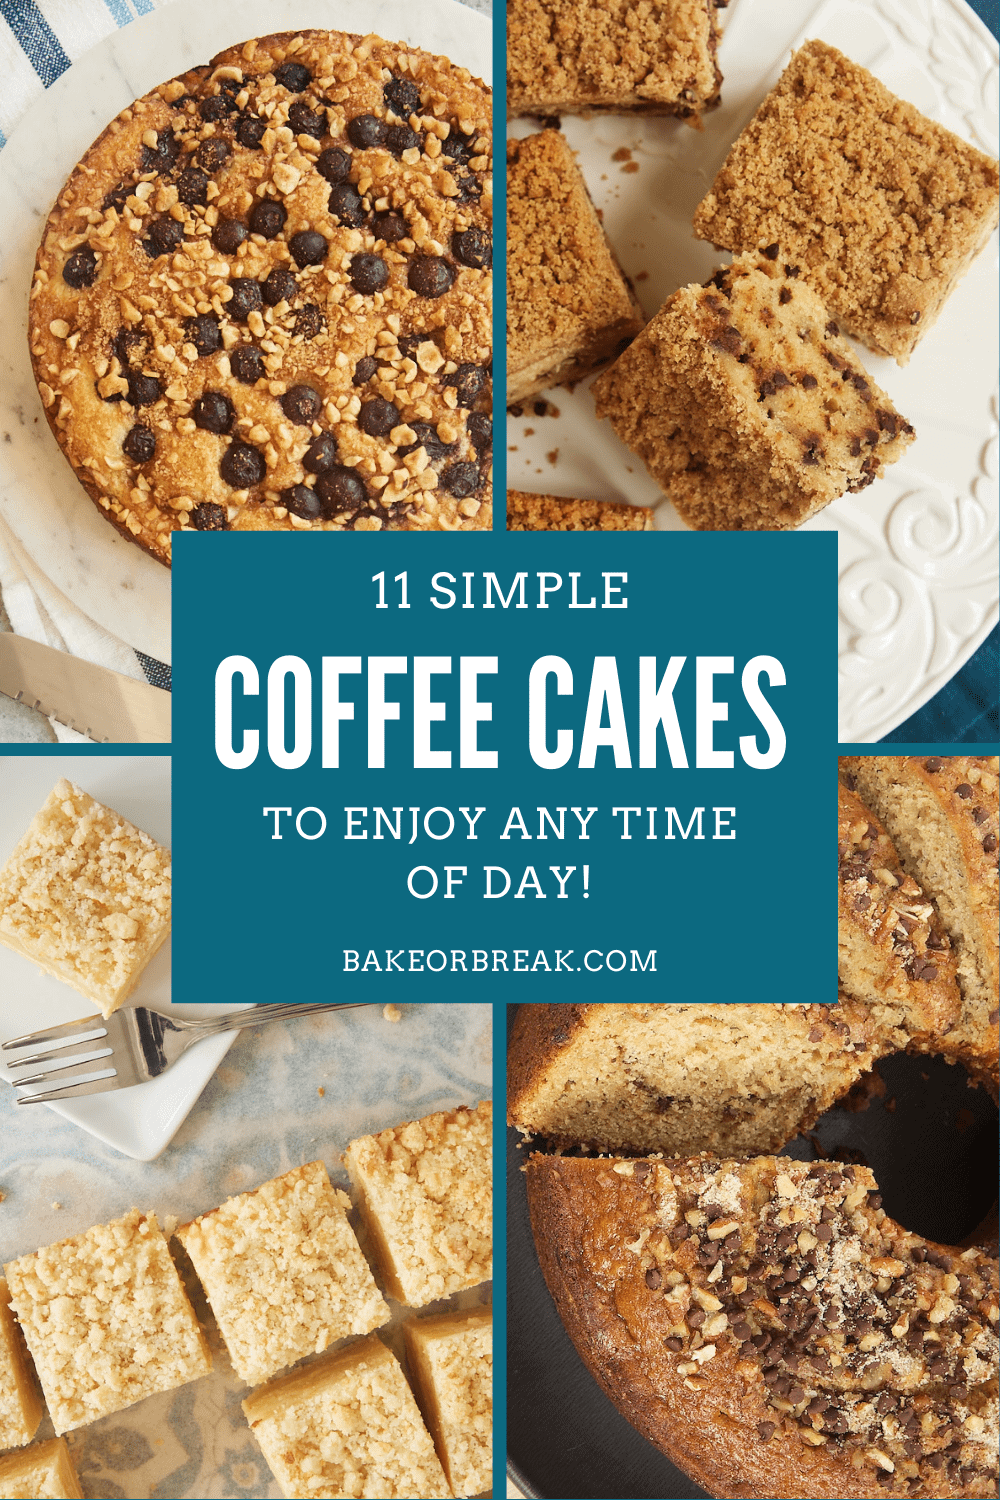 11 Simple Coffee Cakes to Enjoy Anytime of Day bakeorbreak.com